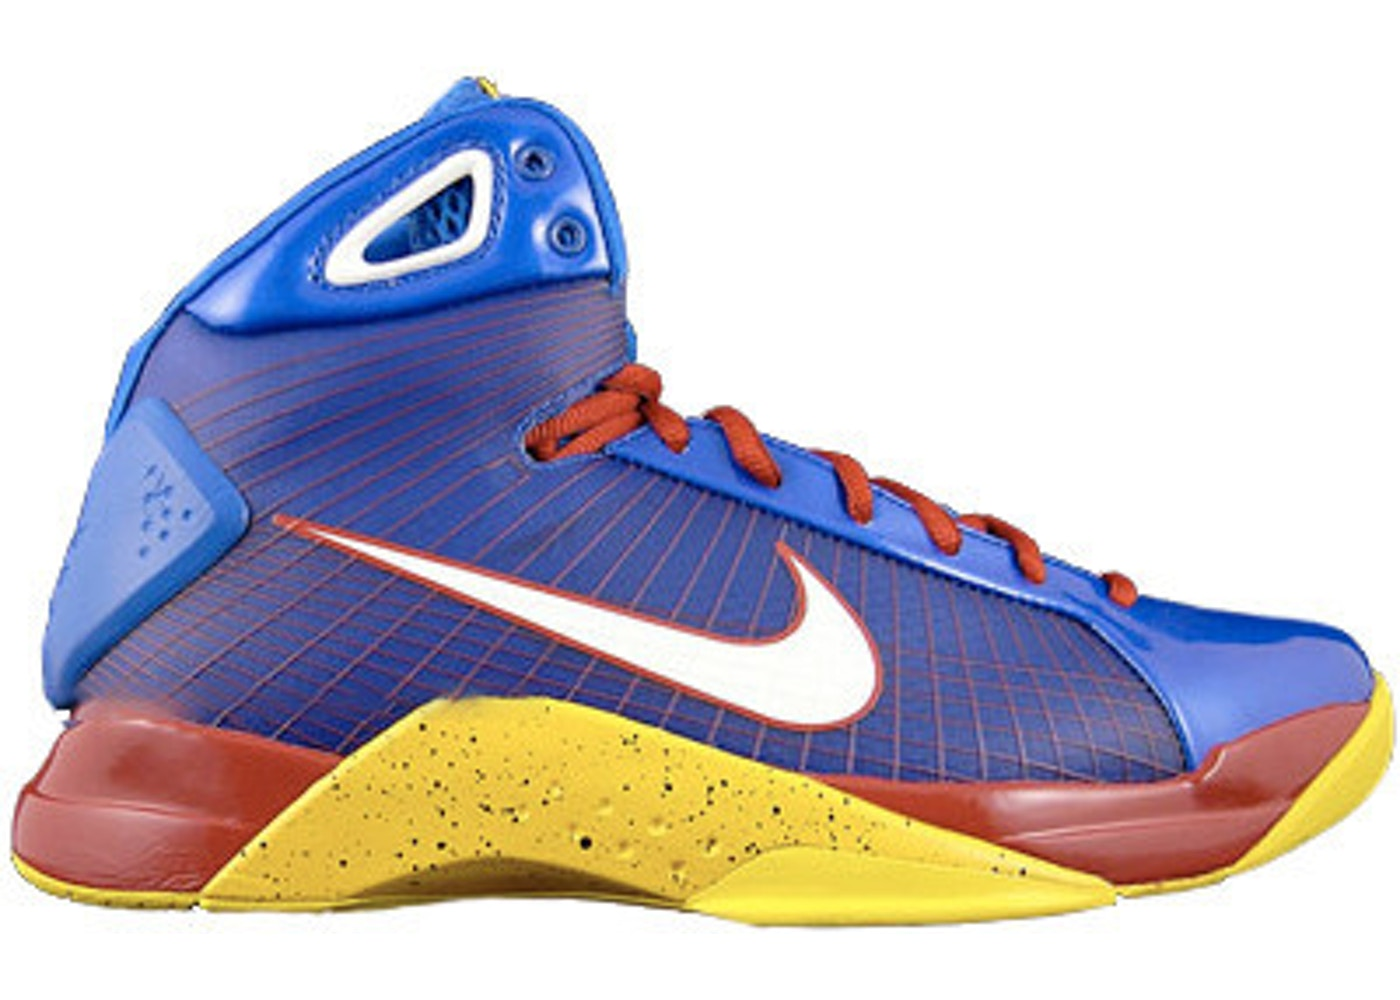 premium selection b1048 0049d Nike Basketball Hyperdunk Shoes - Average Sale Price